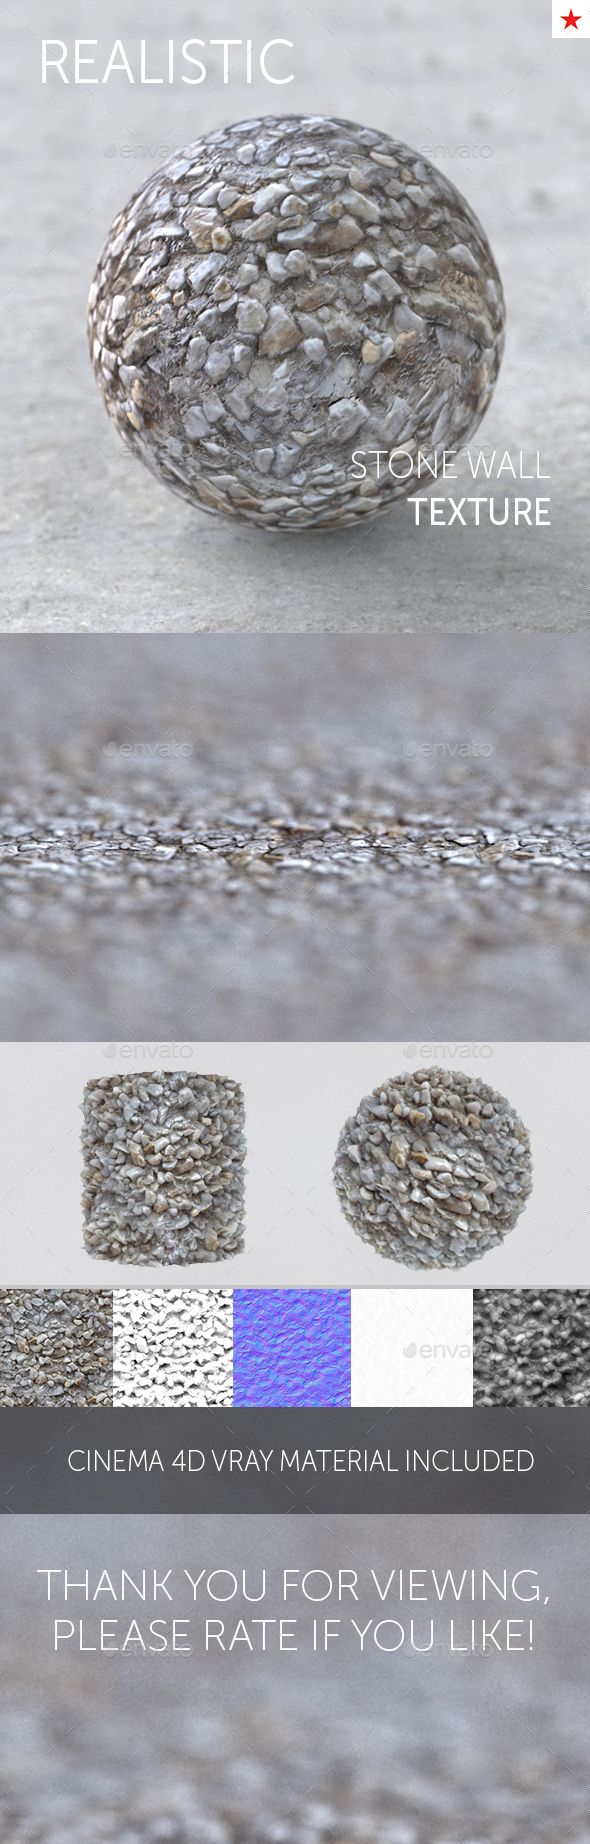 Stone wall seamless realistic texture - 3DOcean Item for Sale